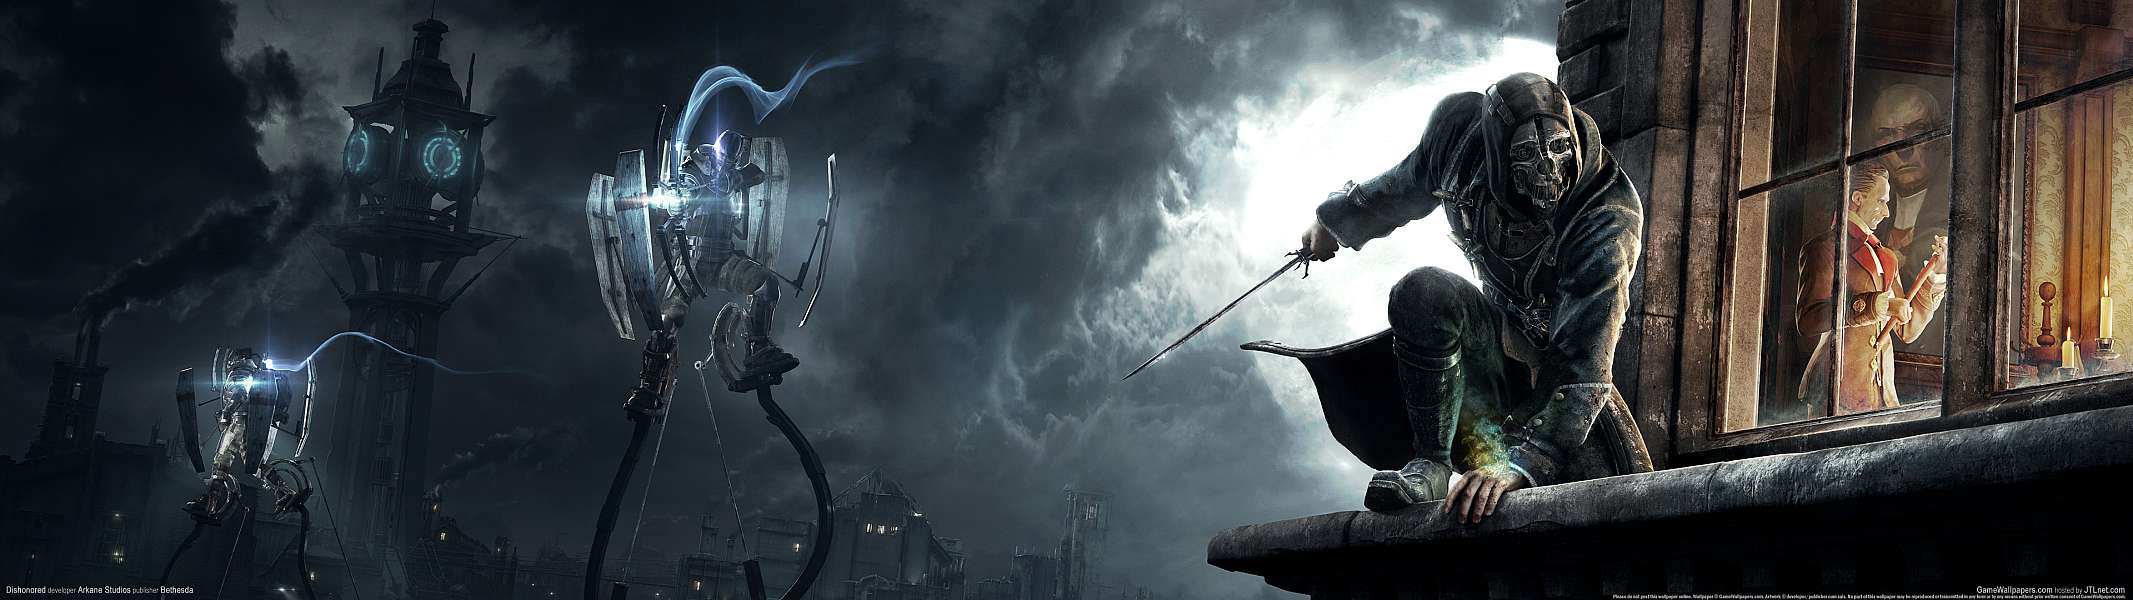 Dishonored dual screen wallpaper or background